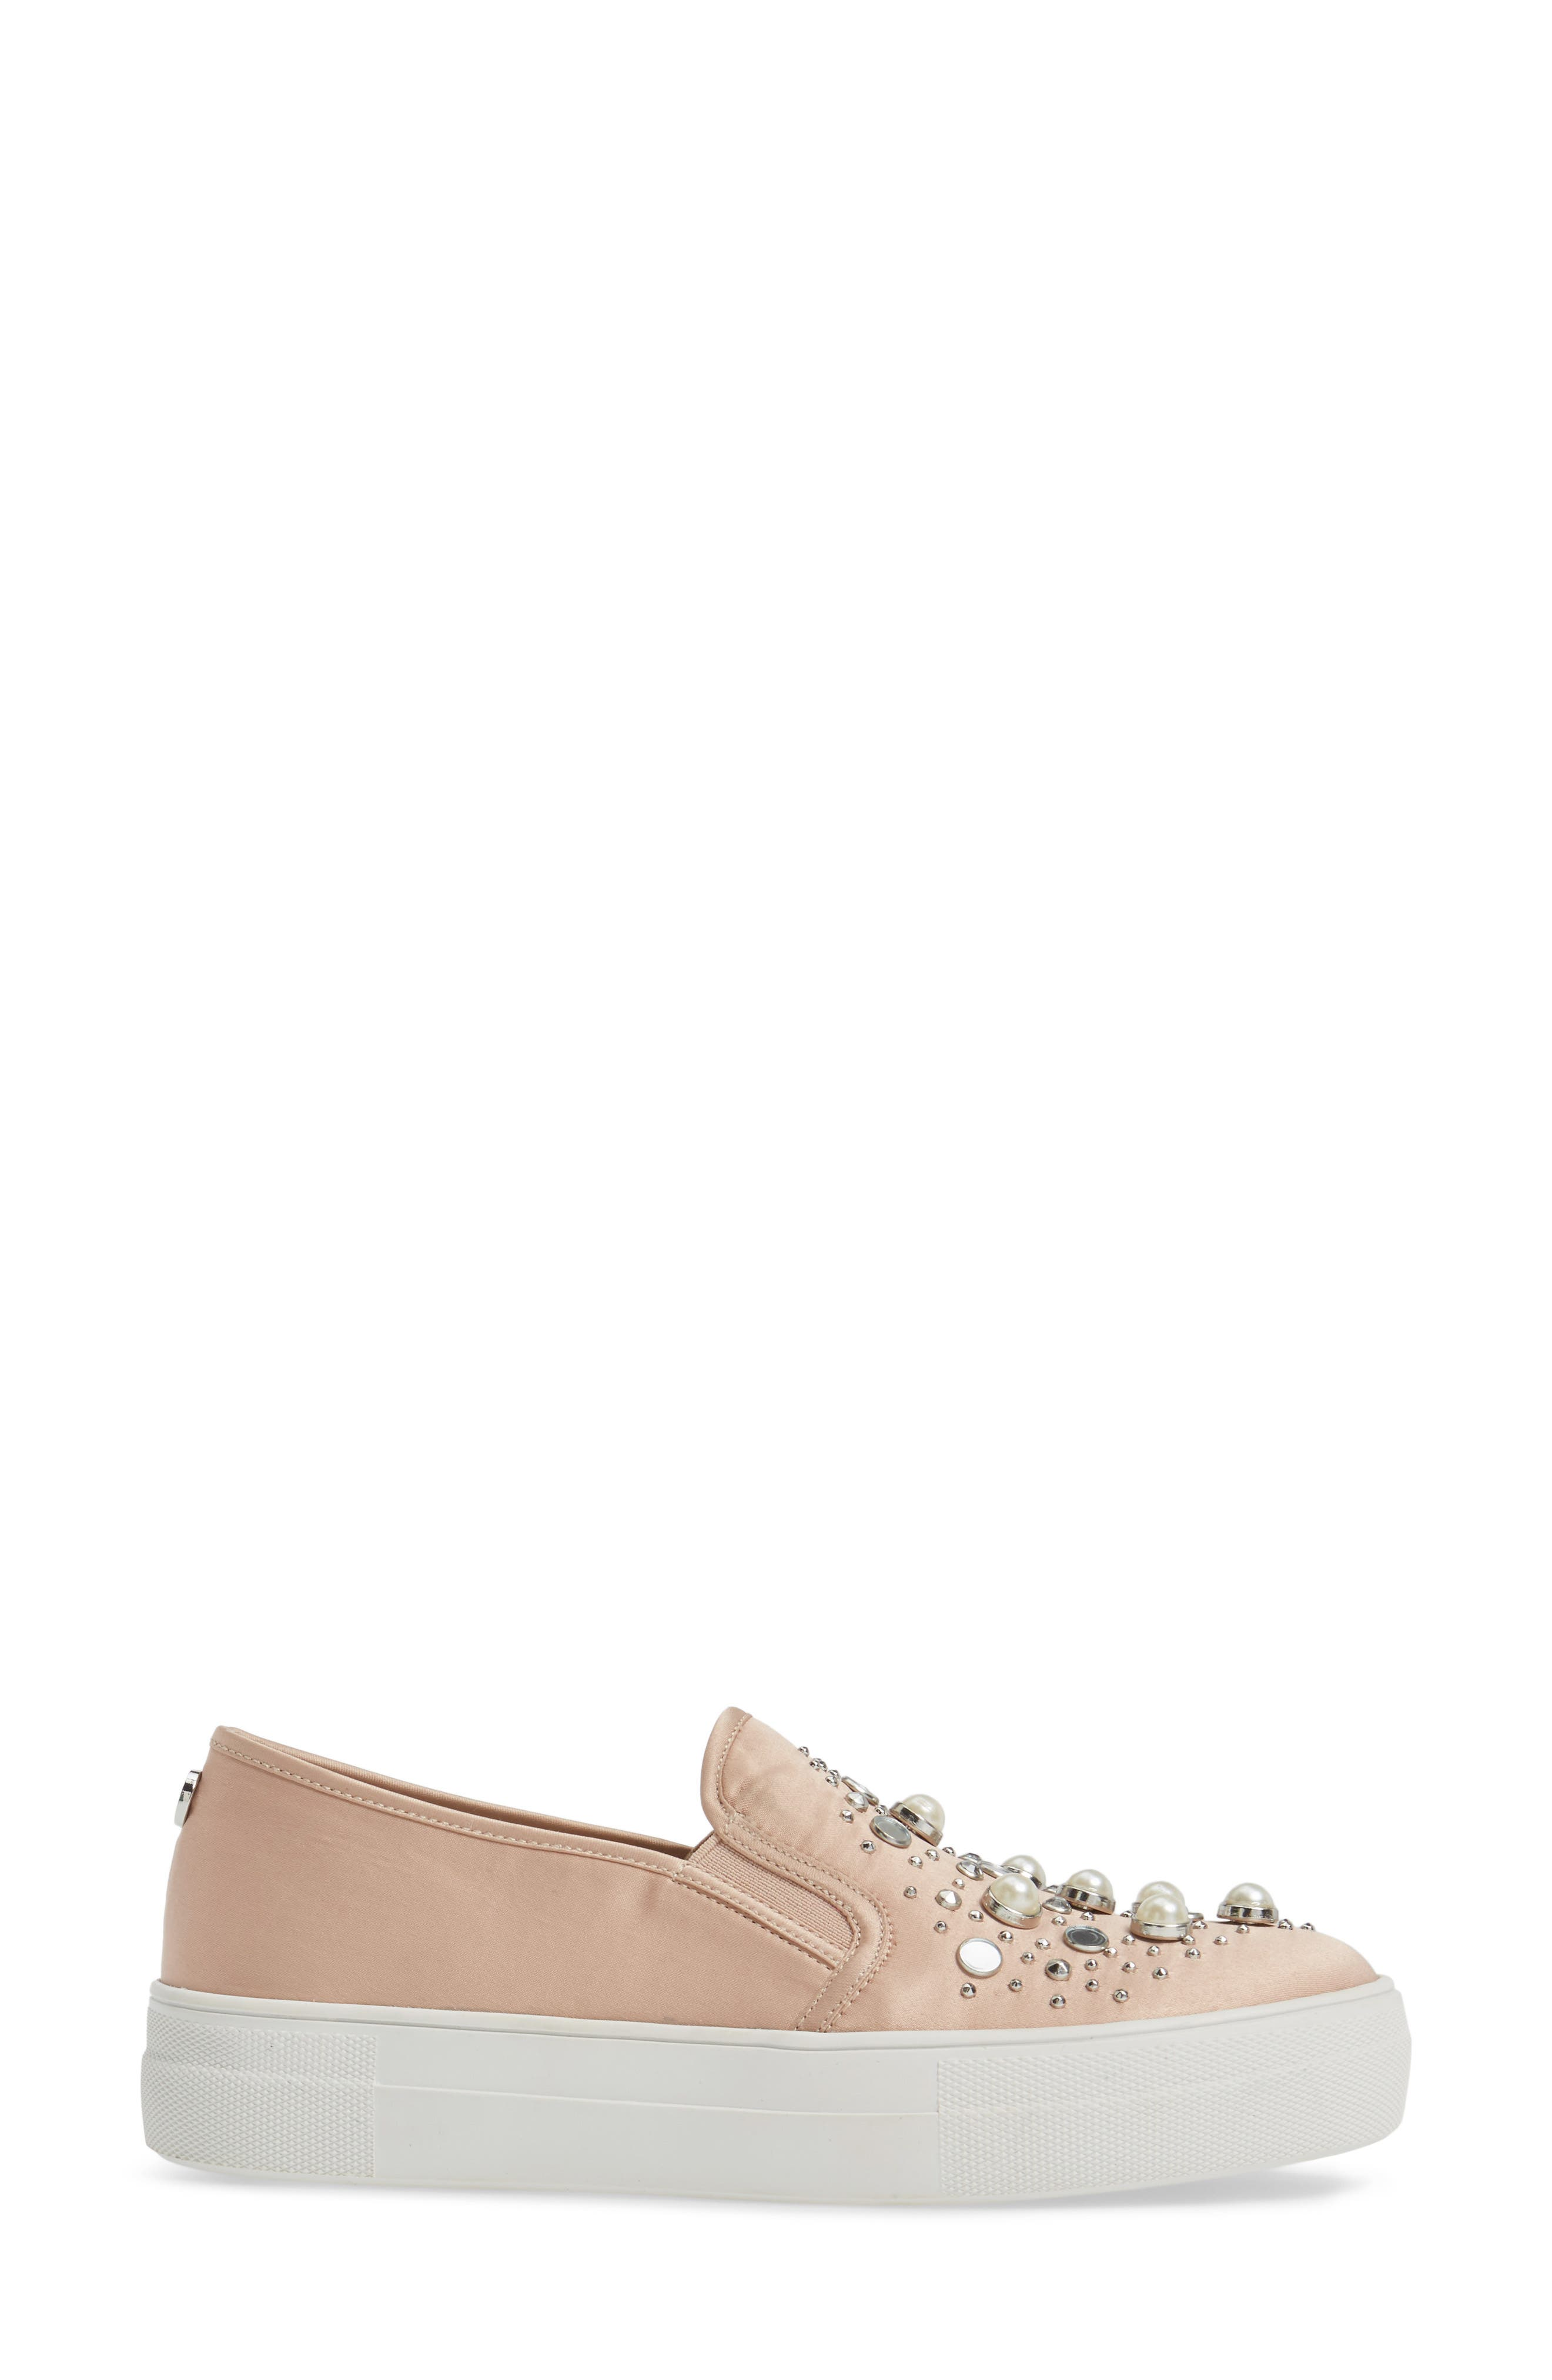 Glade Embellished Slip-On Sneaker,                             Alternate thumbnail 3, color,                             Blush Satin